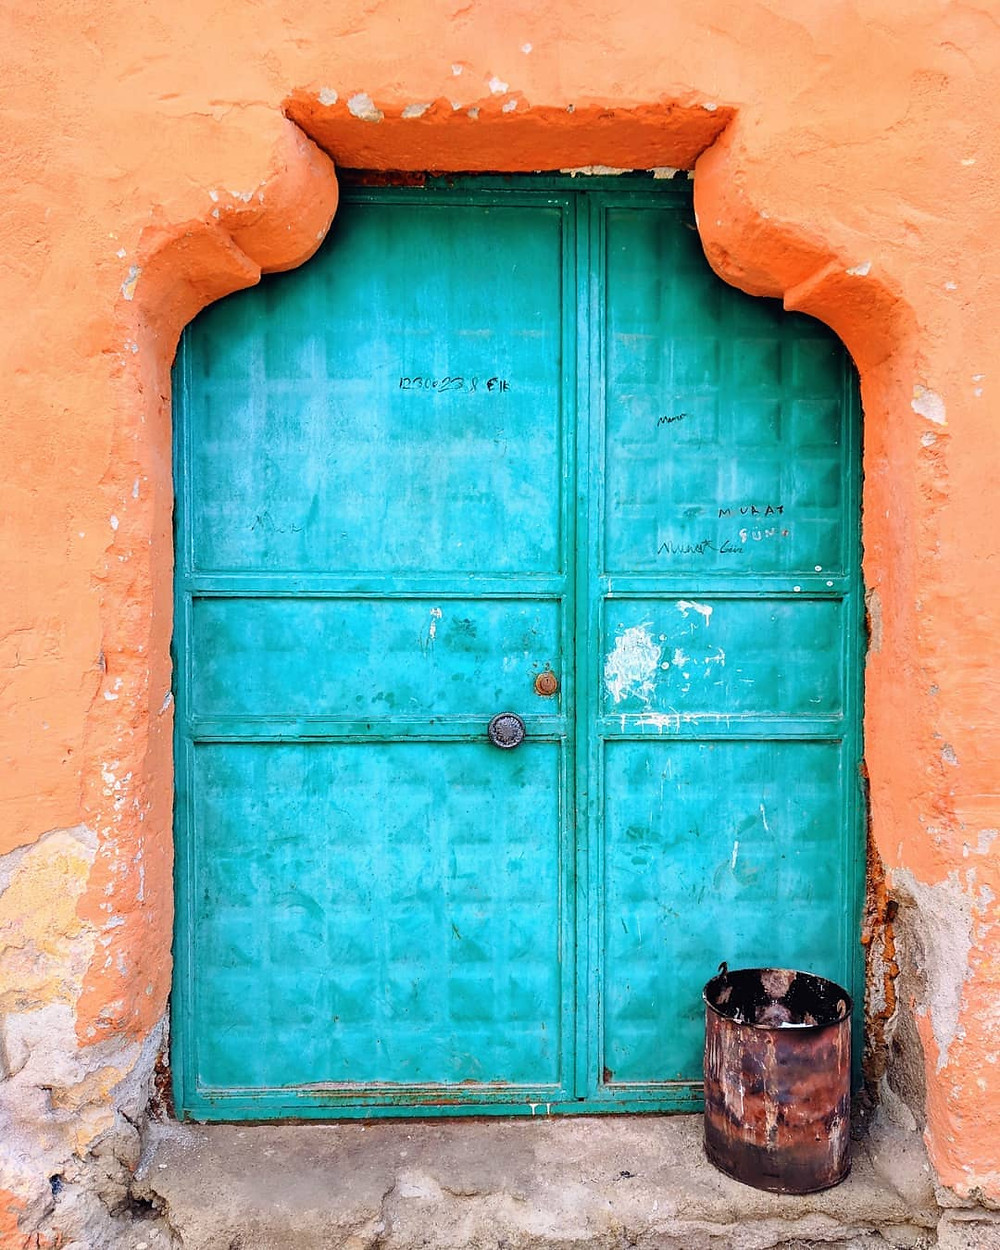 Colorful door in the village/town of Guzelyurt, Turkey. Day trips from Cappadocia.